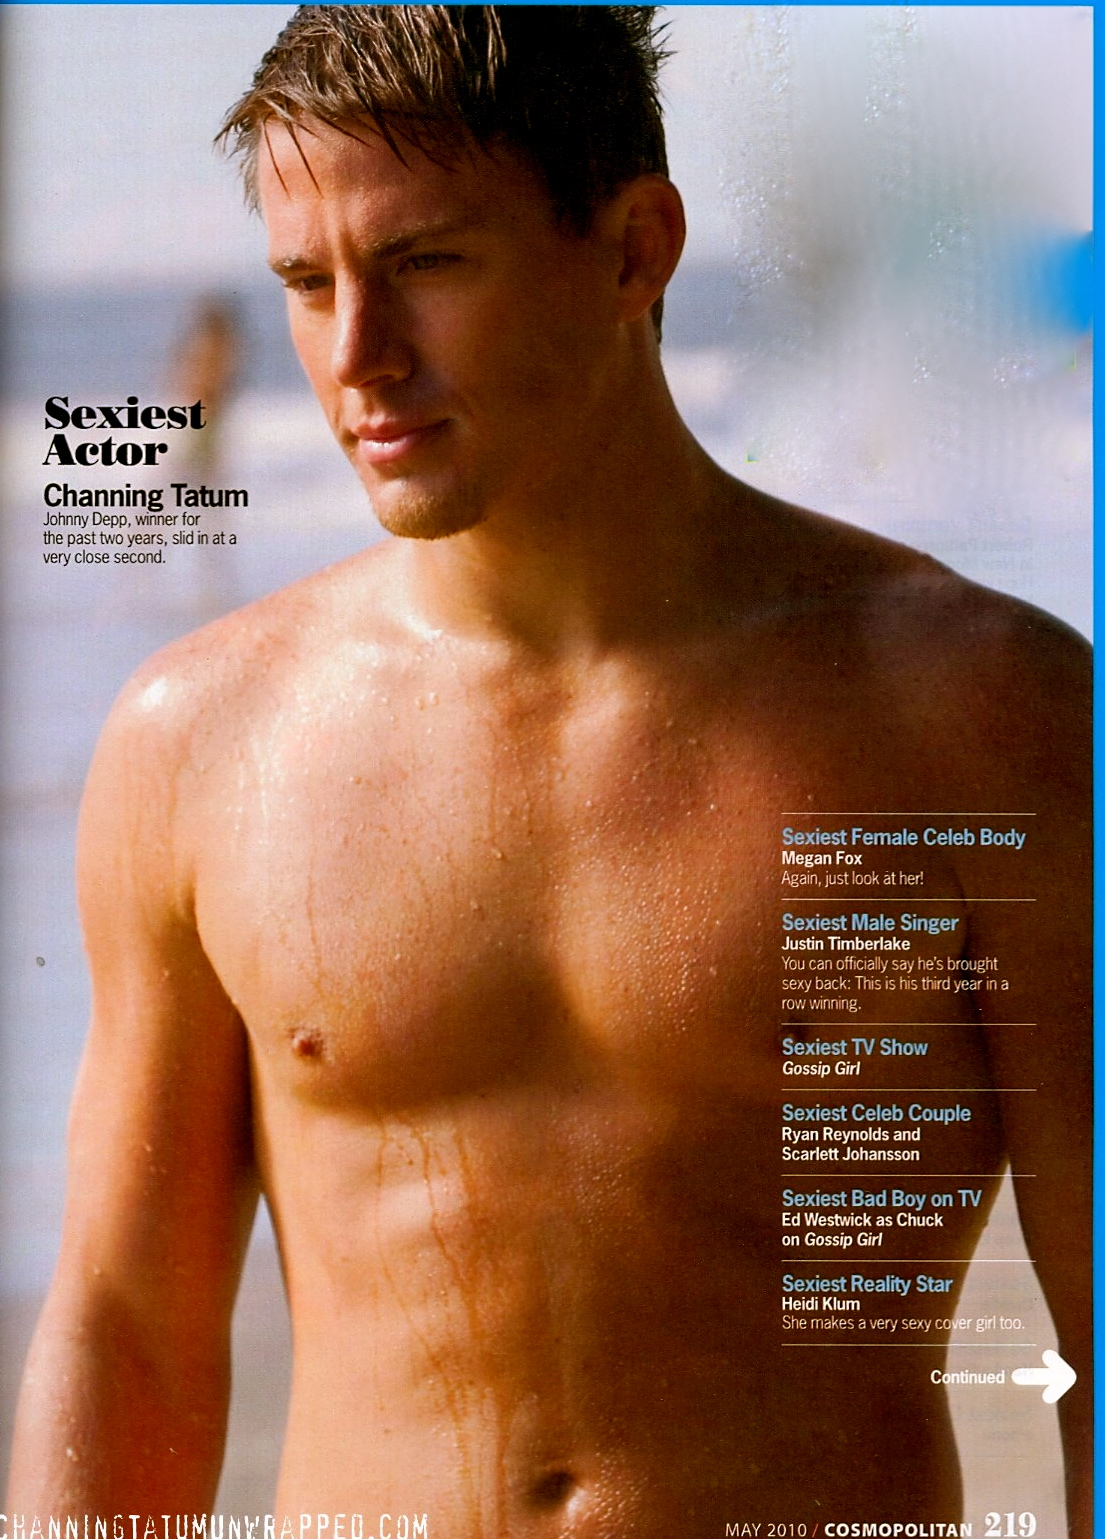 channing tantum people magazine sexiest man alive 22mooncom